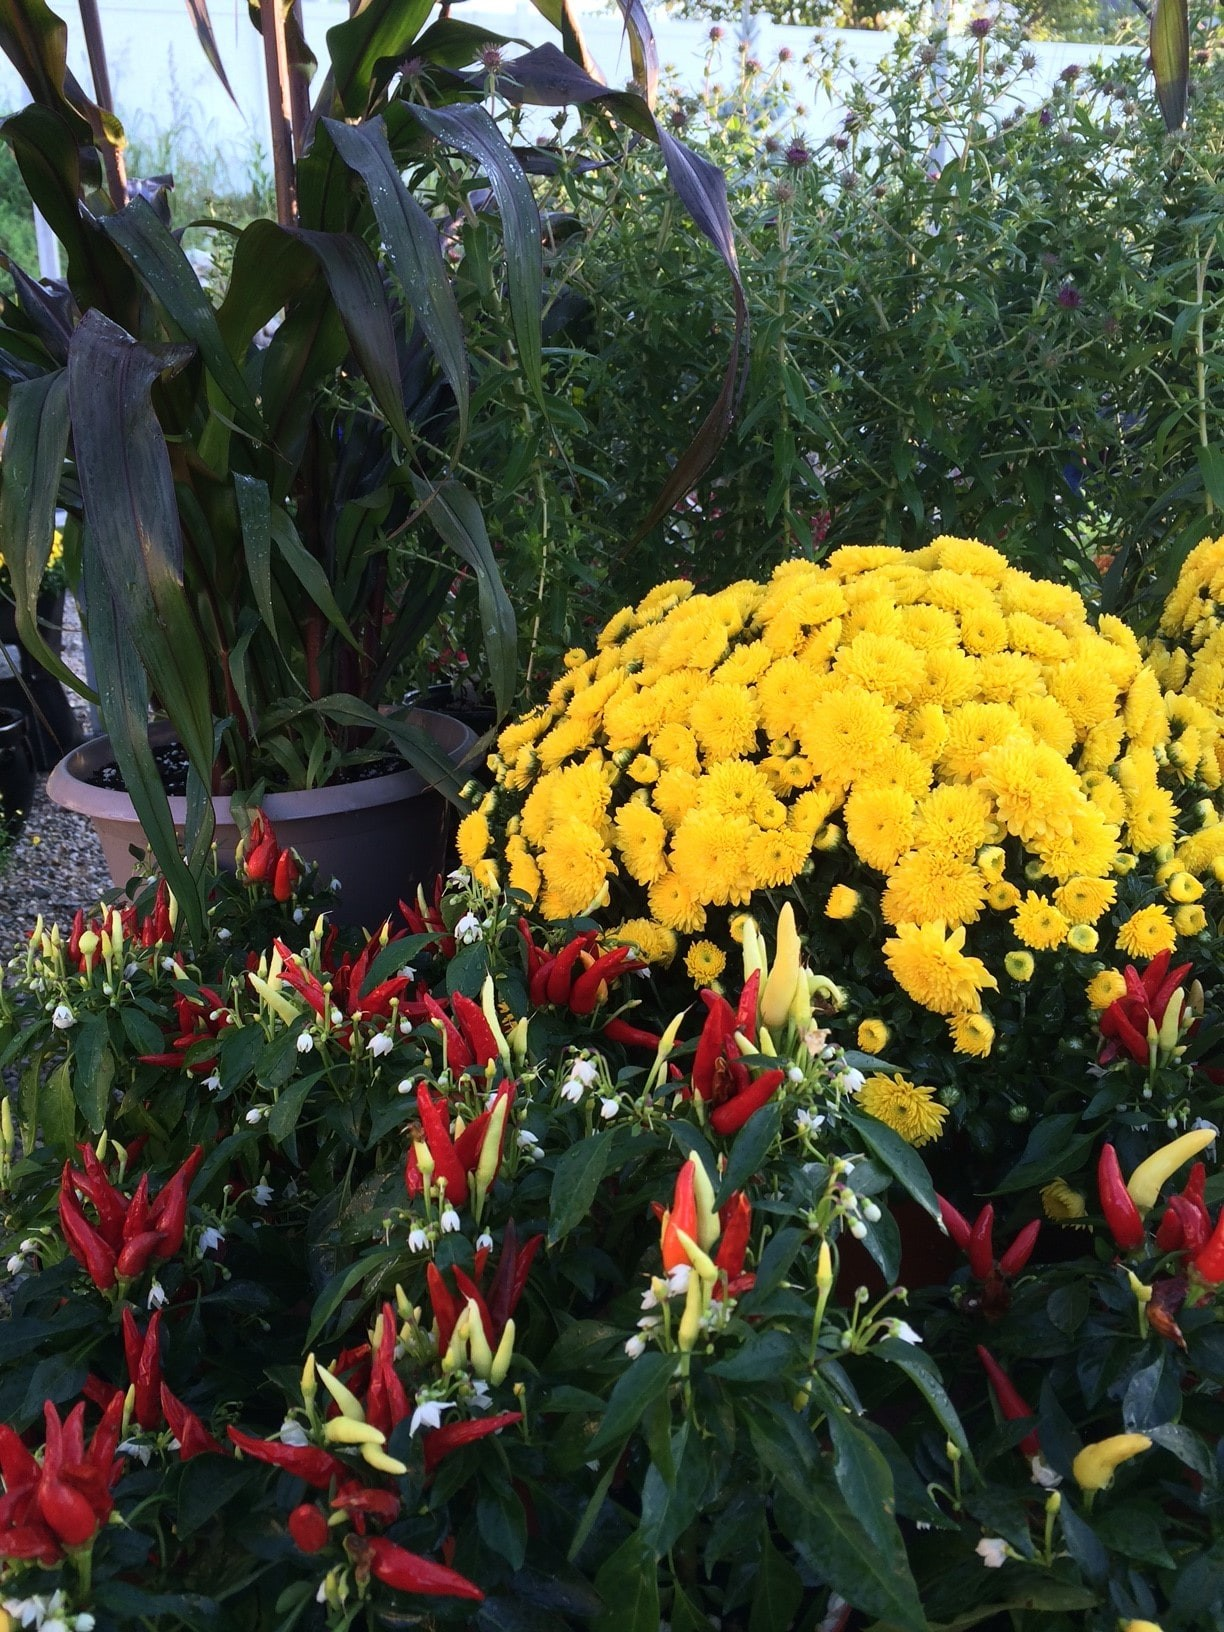 Terrific Ohio Are Mums Perennials Mums Oh Planting Fall Containers When Bored Zone 6 Mums Baxter Gardens Are Mums Perennials Ornamental houzz-03 Are Mums Perennials